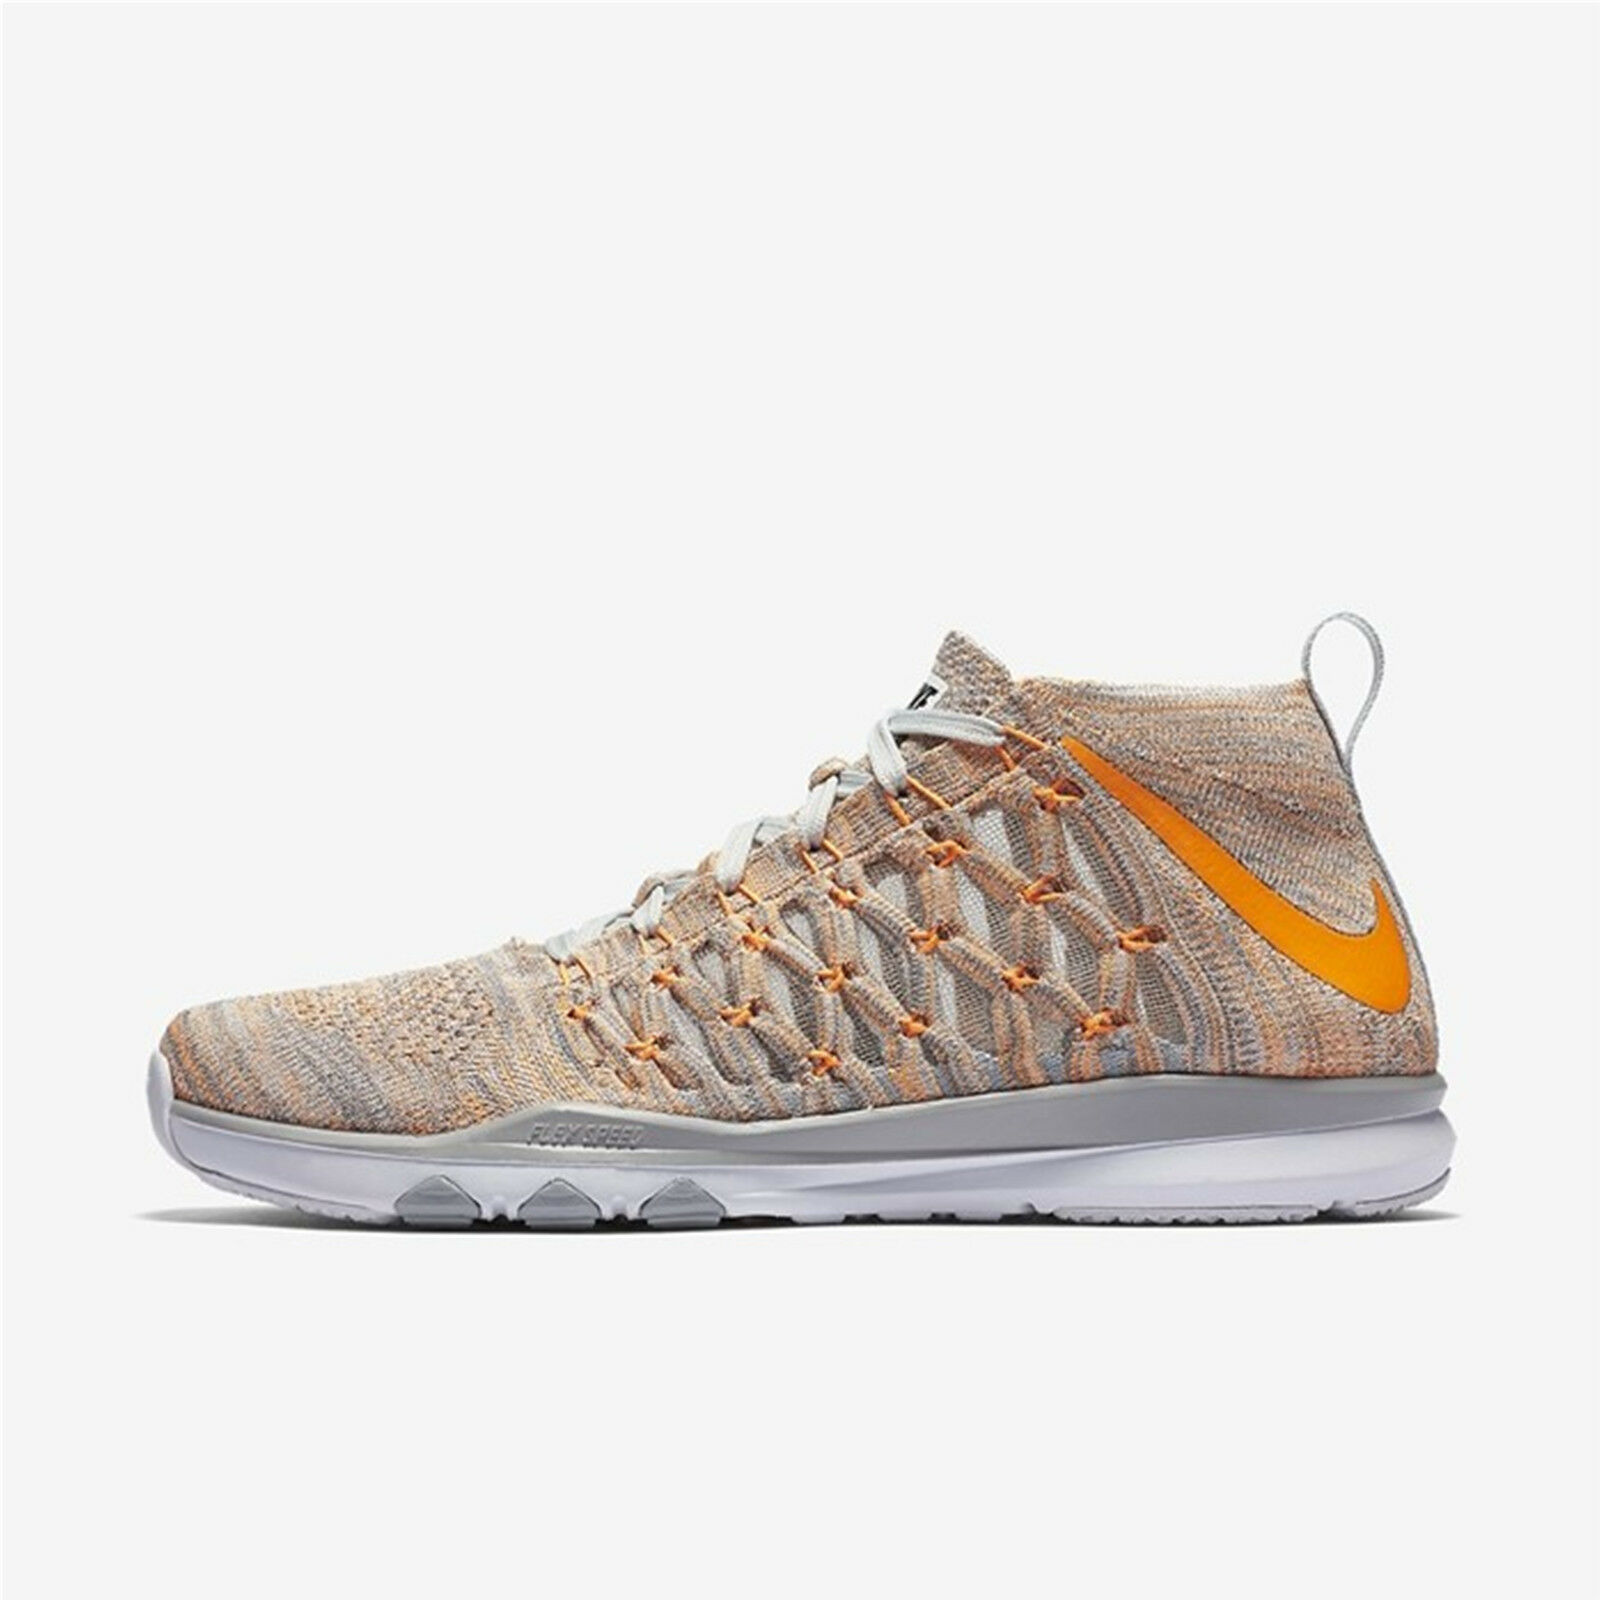 NIKE TRAIN ULTRAFAST FLYKNIT <843694 - 001>,Men's Running Shoes,New with Box image 4